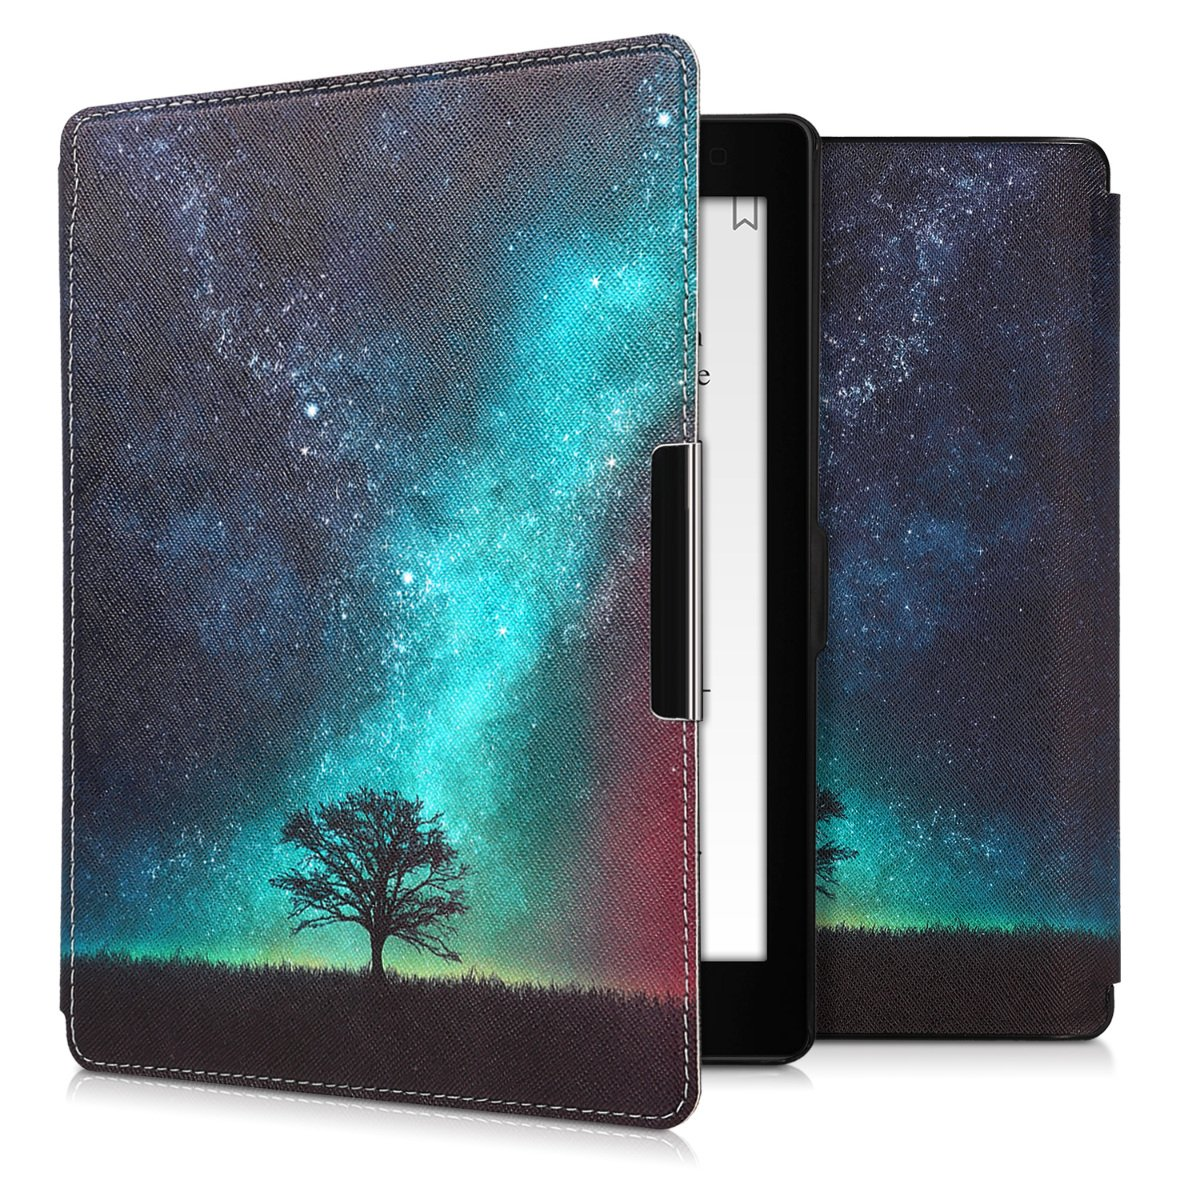 kwmobile Case for Kobo Aura ONE - Book Style PU Leather Protective e-Reader Cover Folio Case - blue grey black